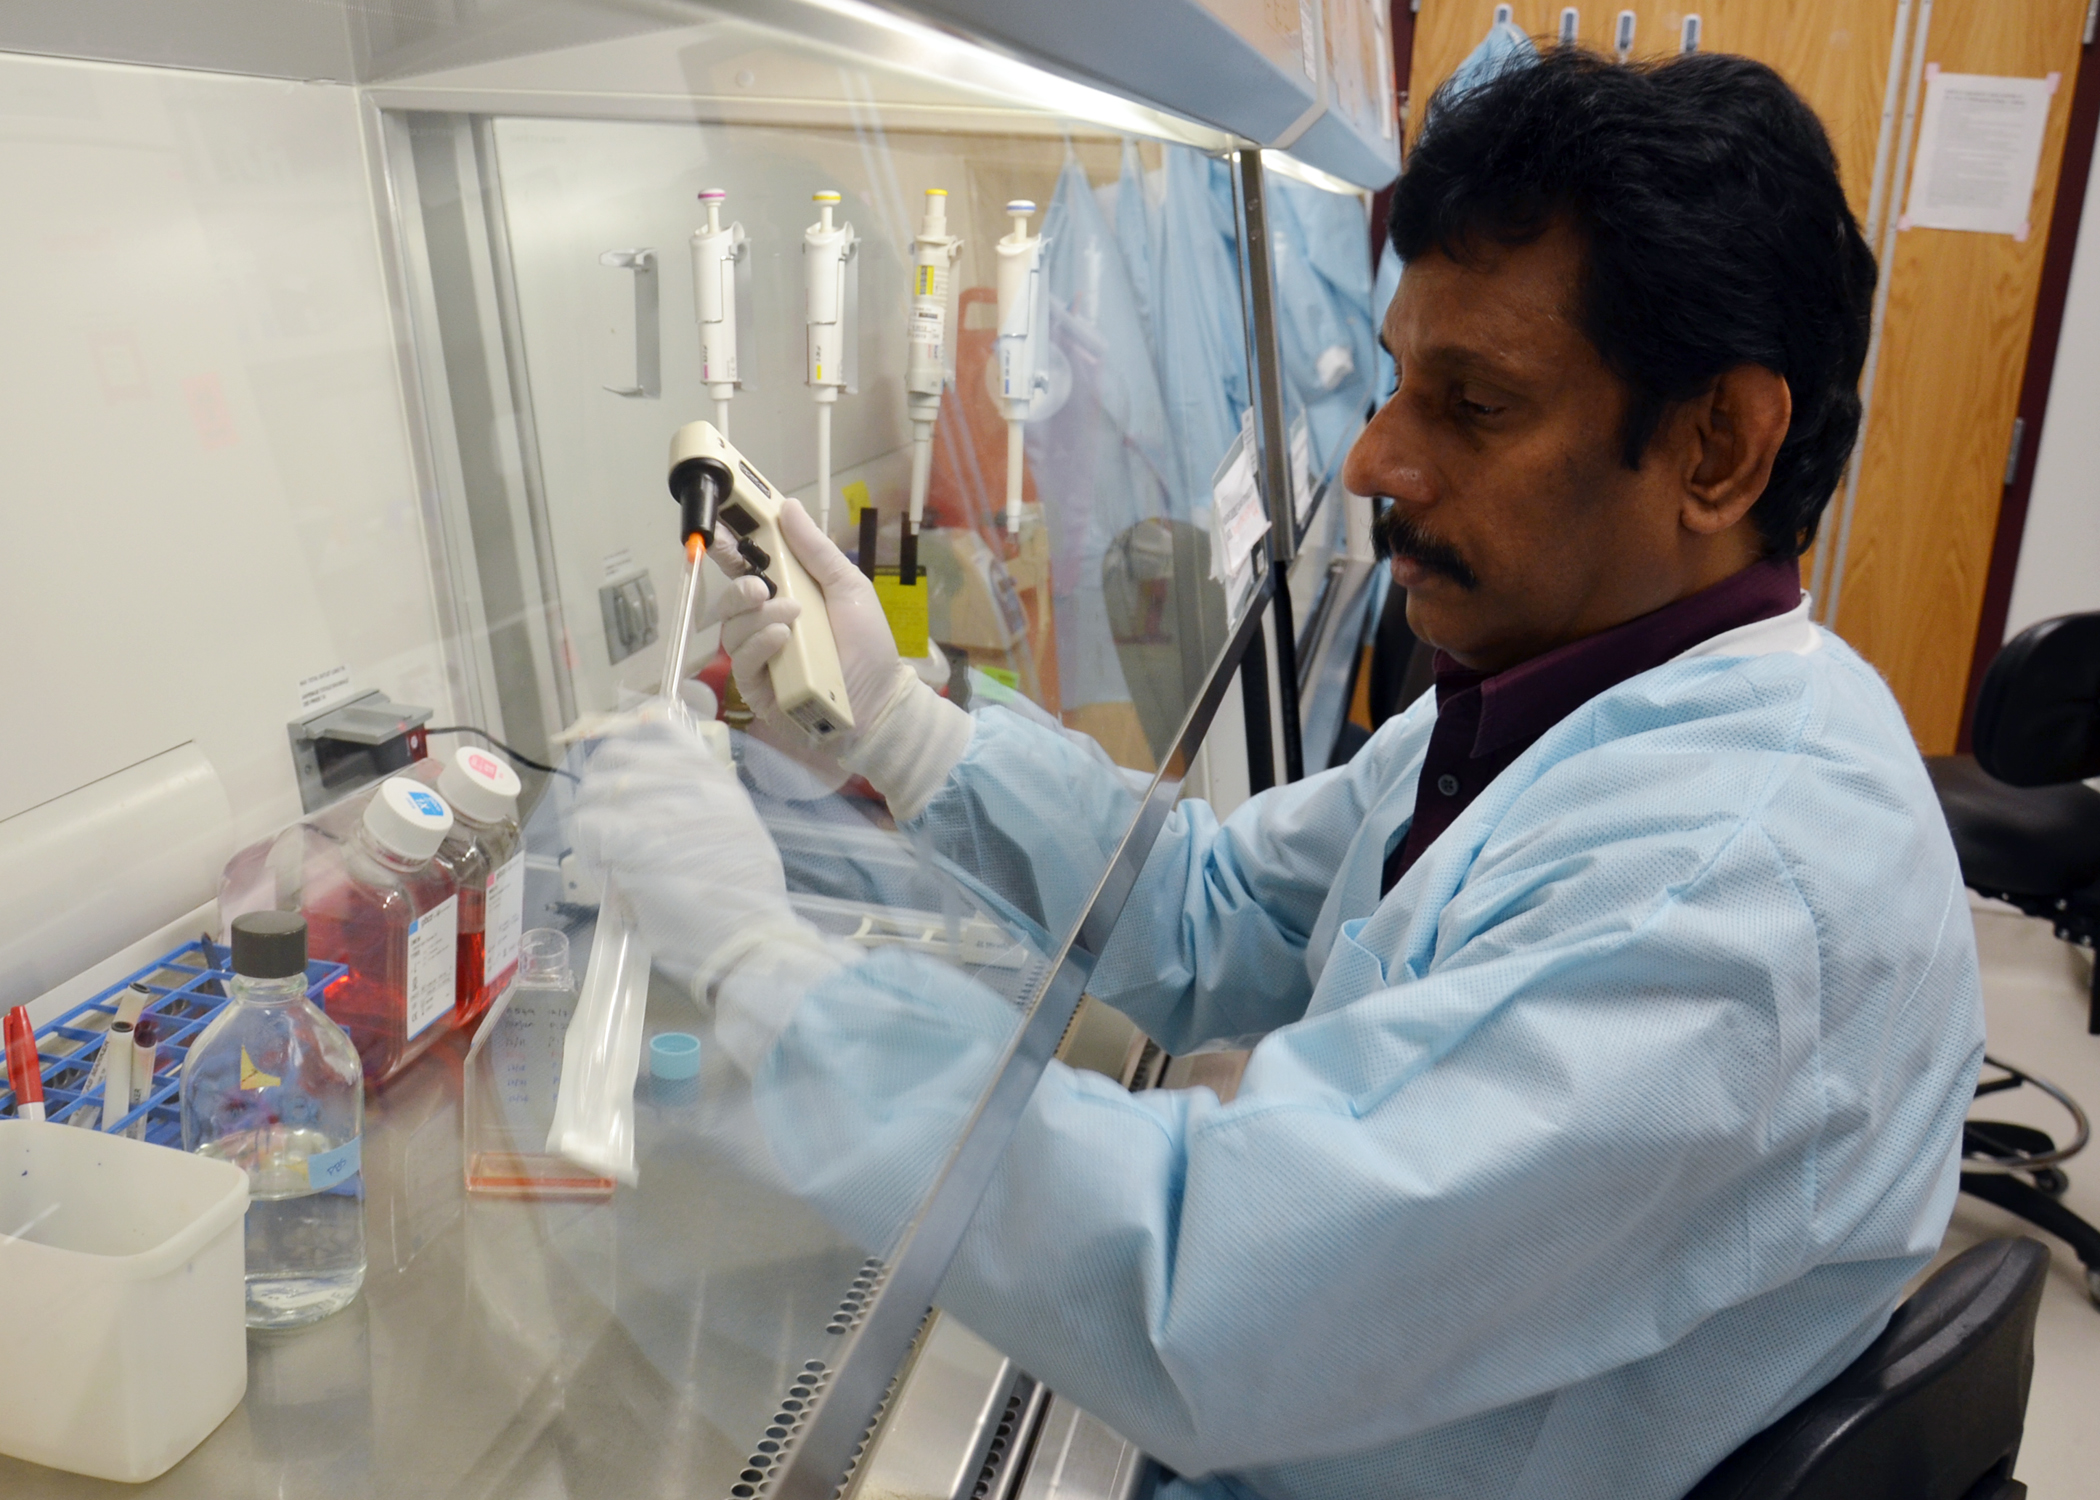 Dr. Elankumaran Subbiah in the lab